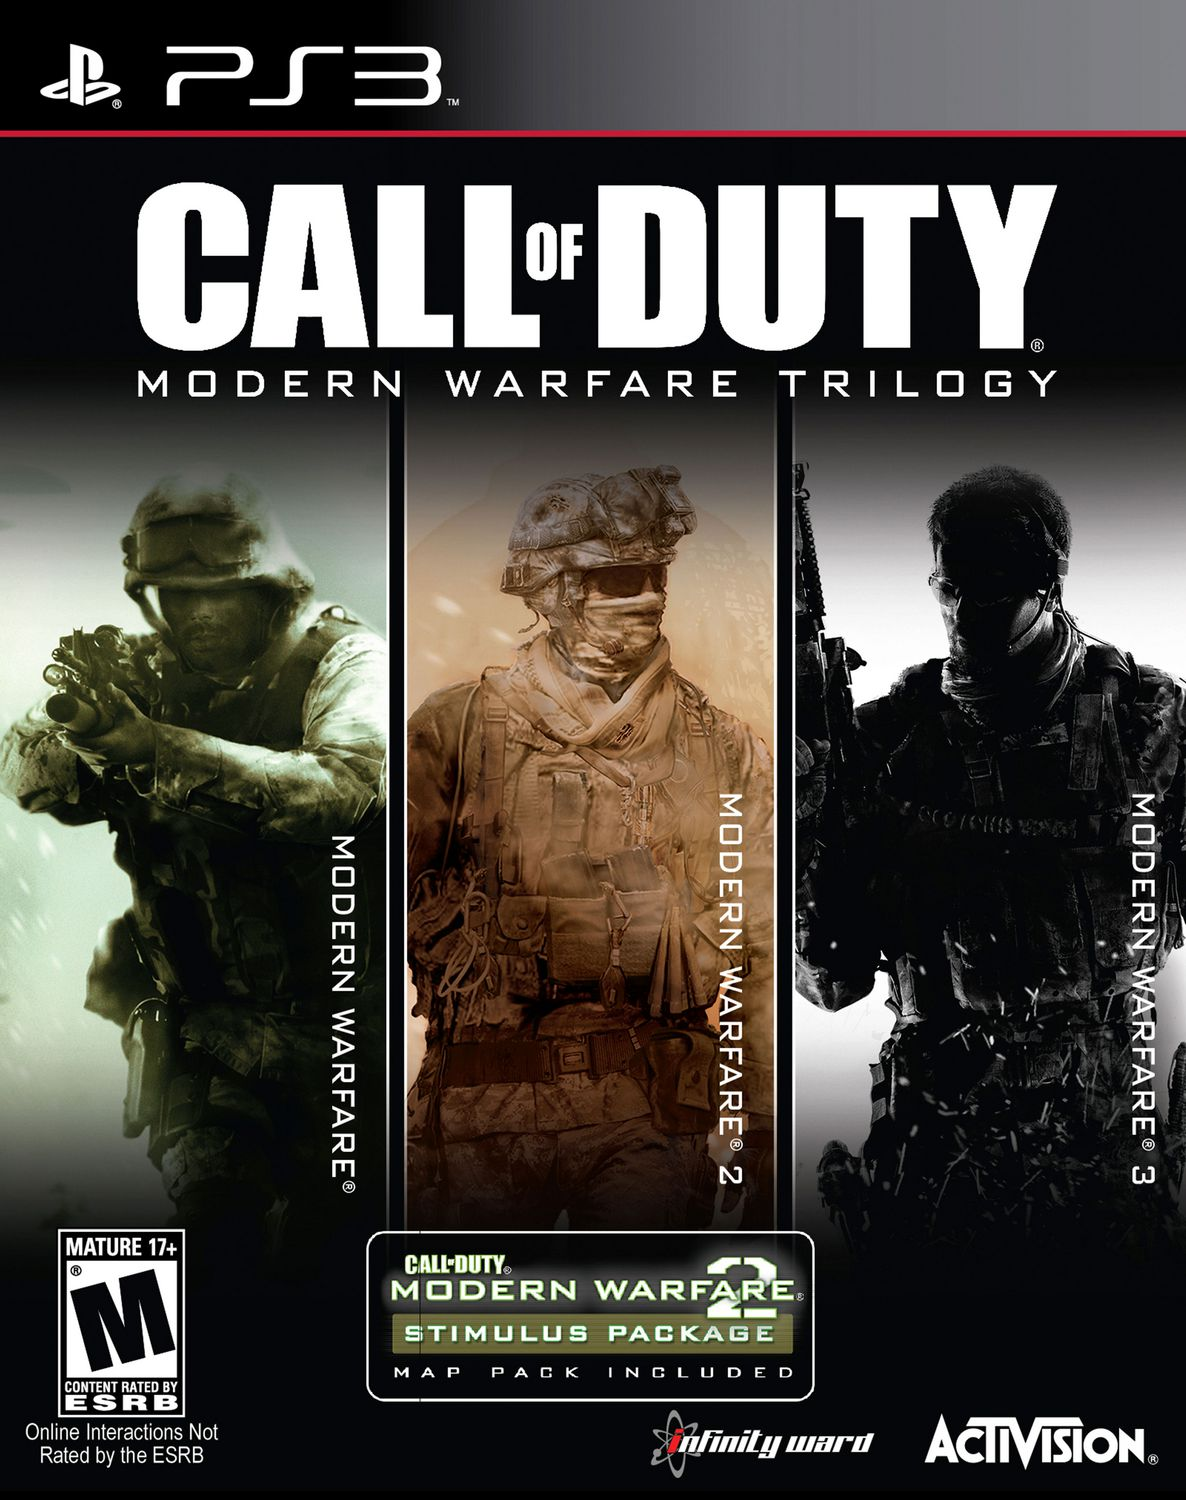 Call Of Duty Modern Warfare Trilogy 3 Discs Activision